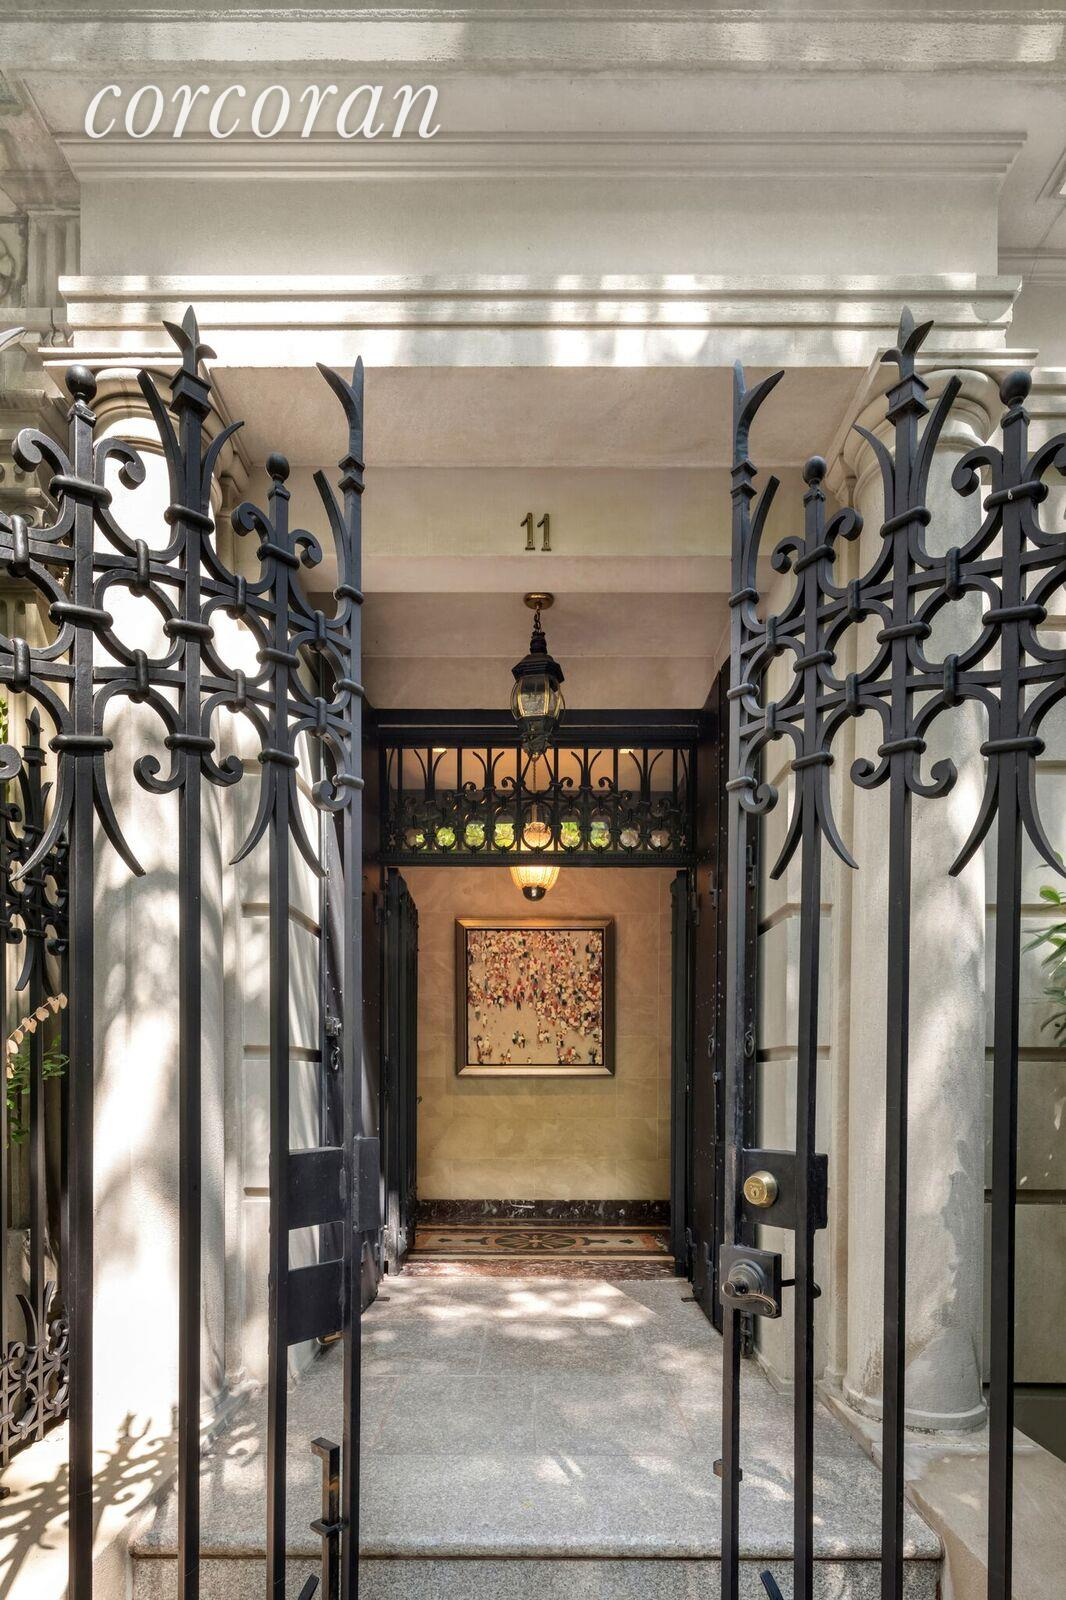 Villas / Townhouses for Sale at 11 EAST 82ND STREET 11 East 82nd St New York, New York,10028 United States